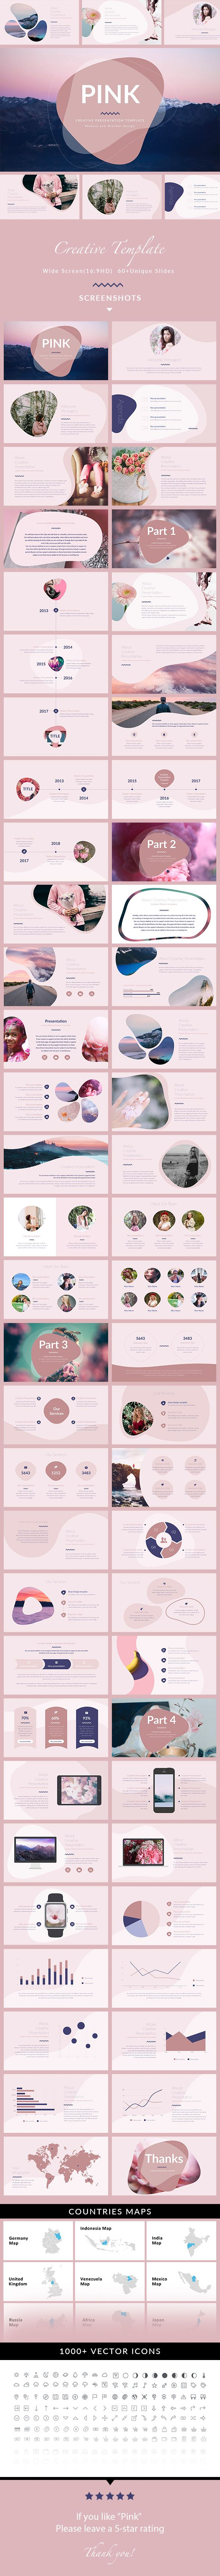 Pink - Minimal & Creative PowerPoint Template - Creative #PowerPoint Templates Download here: https://graphicriver.net/item/pink-minimal-creative-powerpoint-template/20321941?ref=alena994